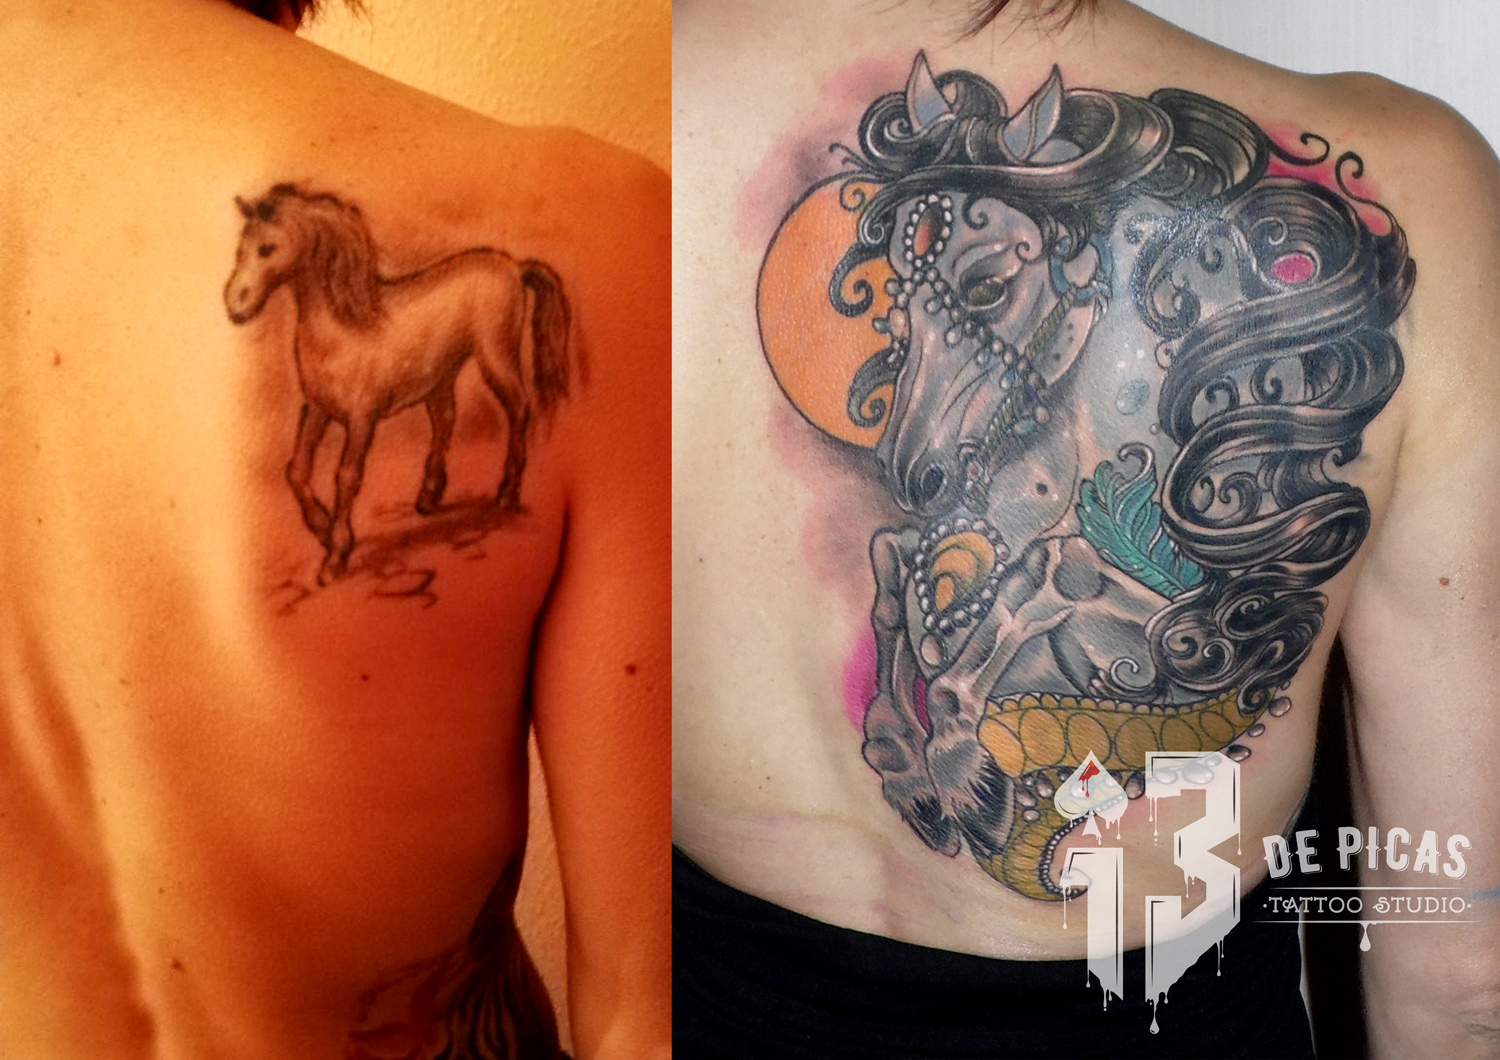 caballo cover up neotradicional color espalda tapado 13depicas Jaca Huesca